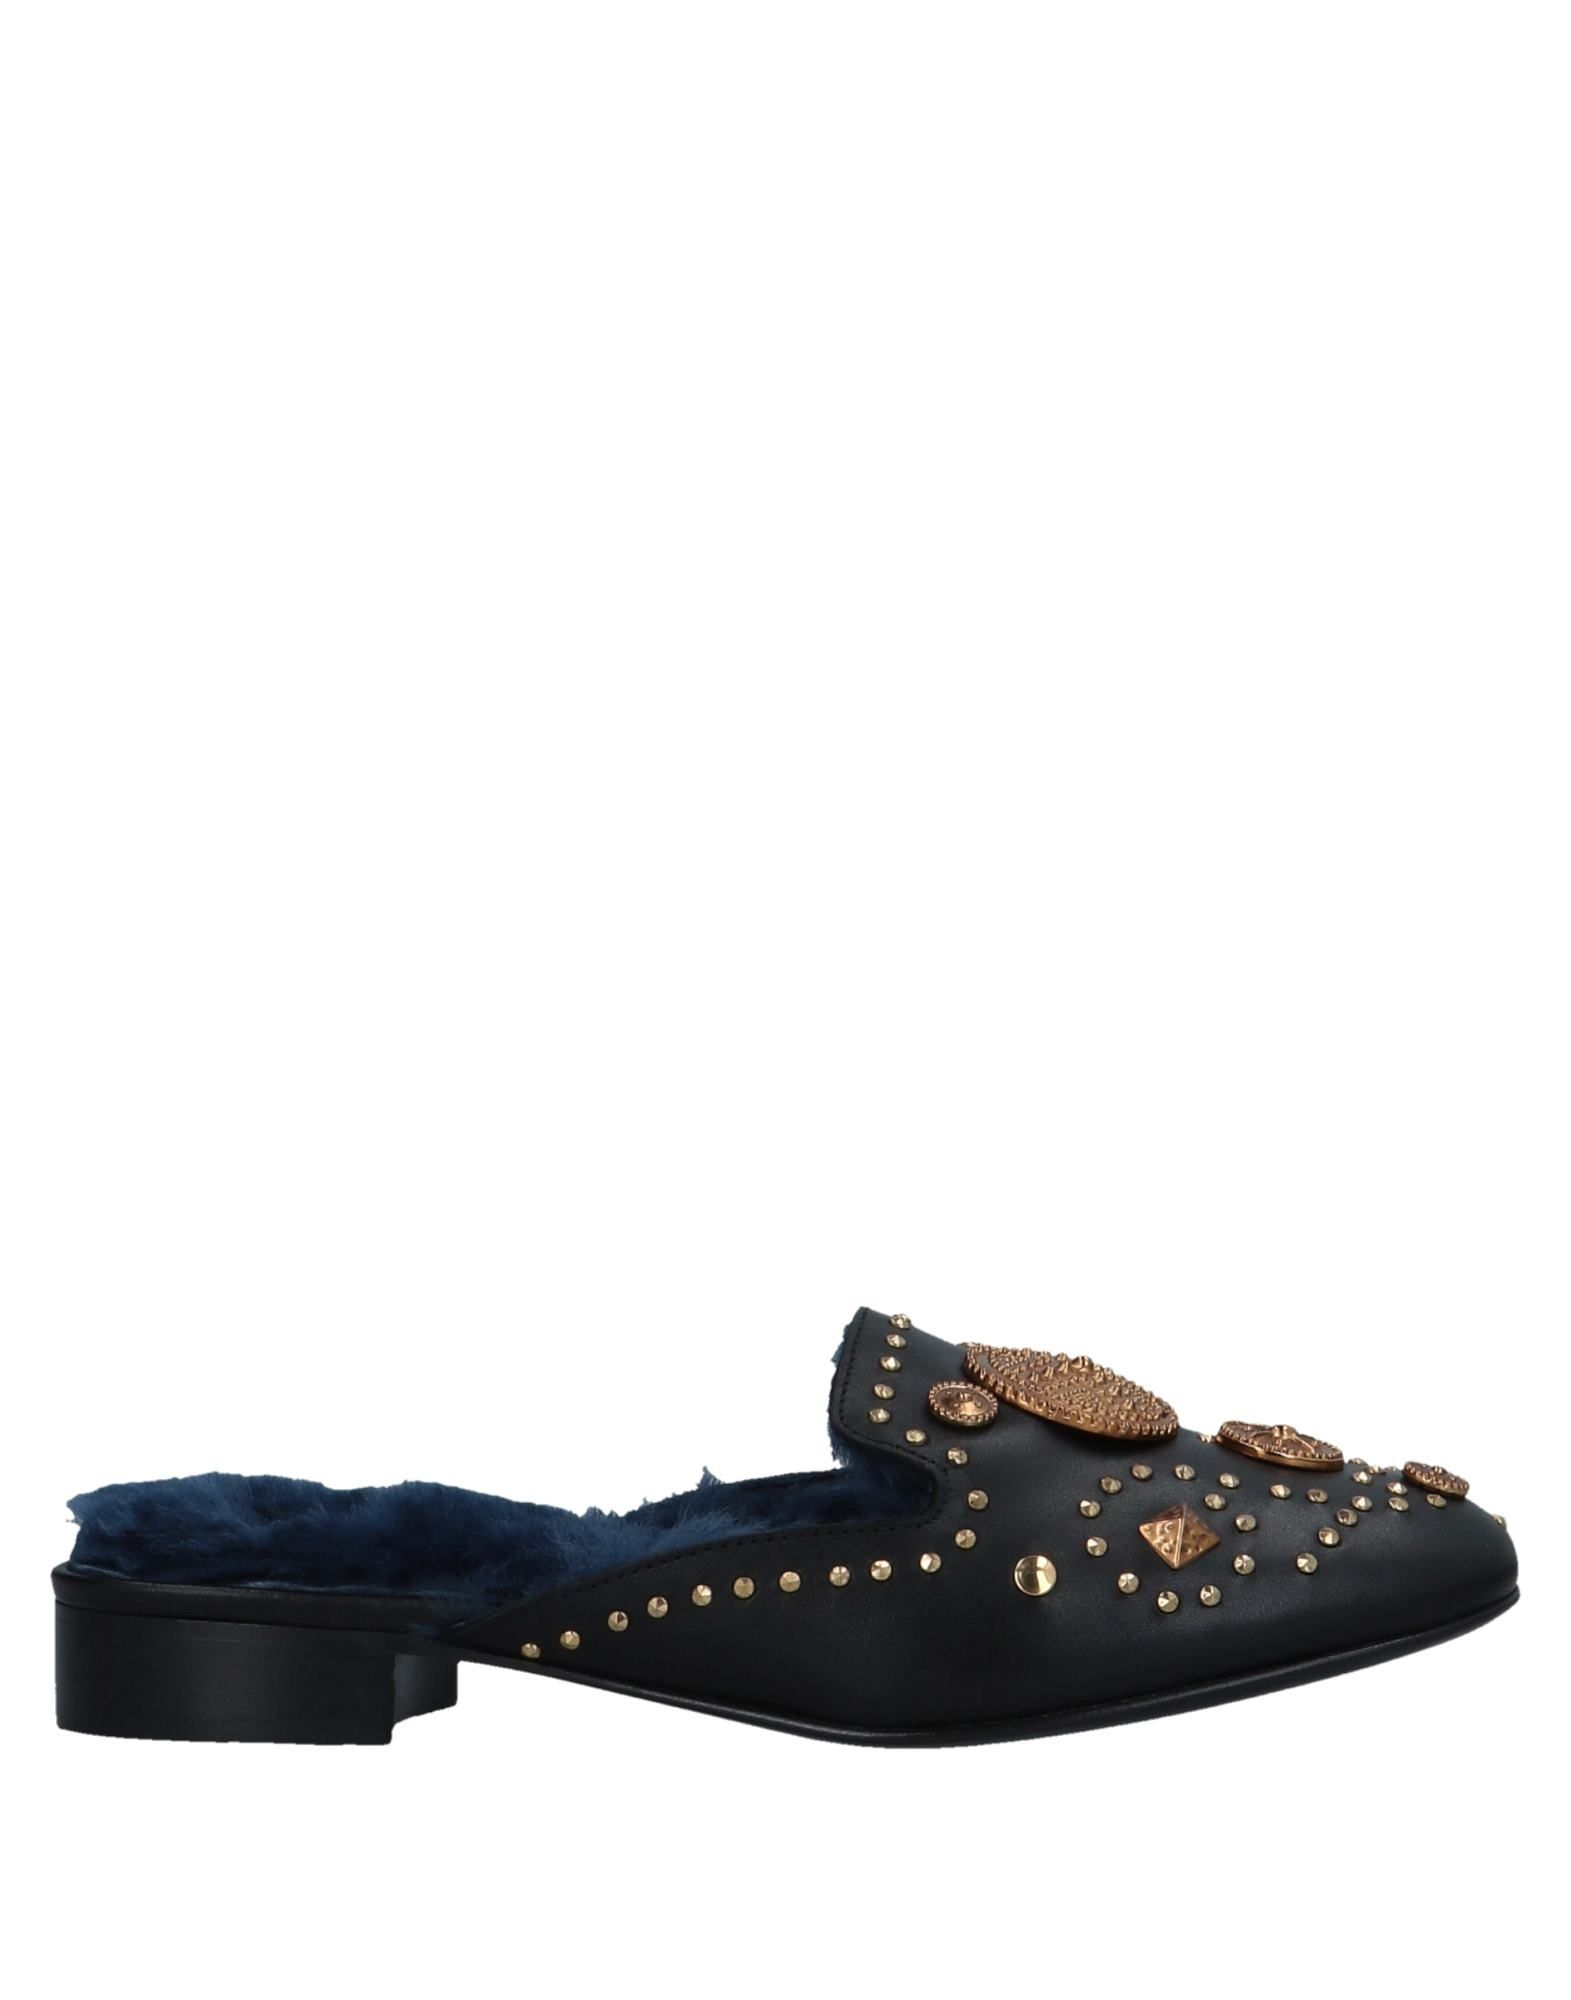 Fausto Puglisi Loafers Loafers - Women Fausto Puglisi Loafers Loafers online on  United Kingdom - 11508170BW 6f13d6